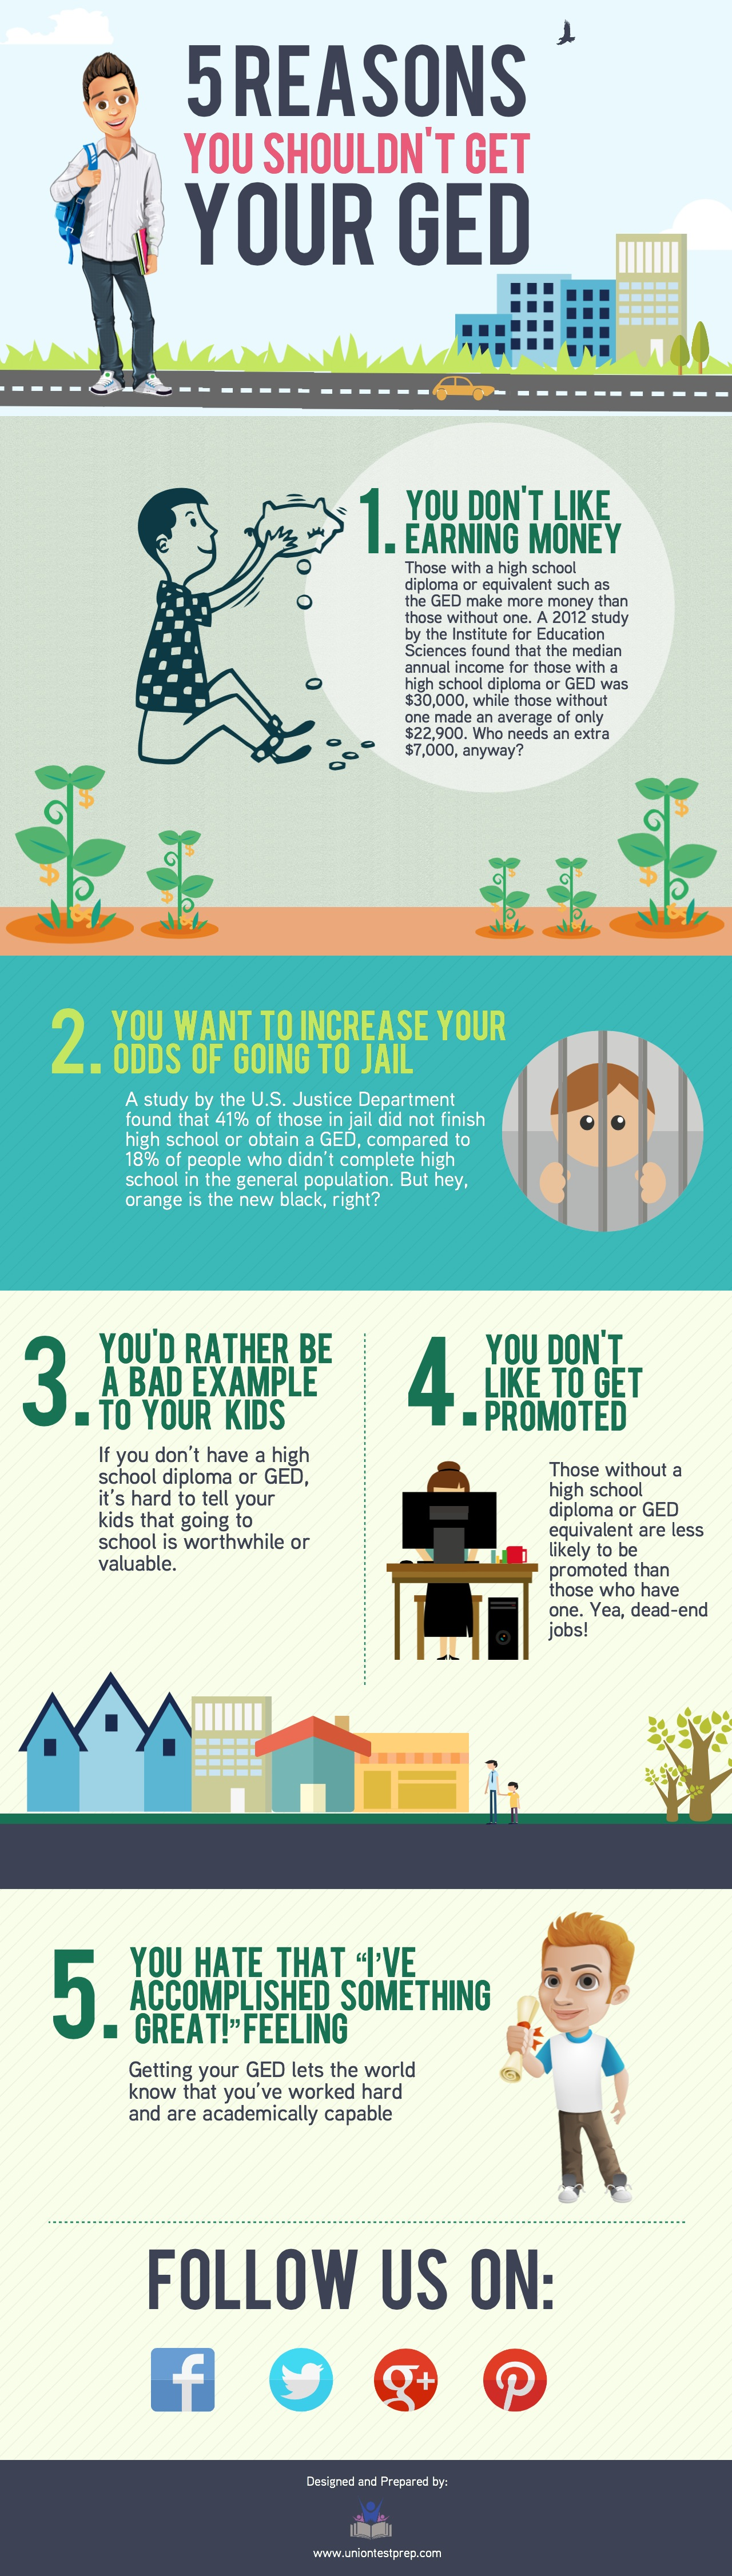 5 Reasons You Shouldn't Get Your GED